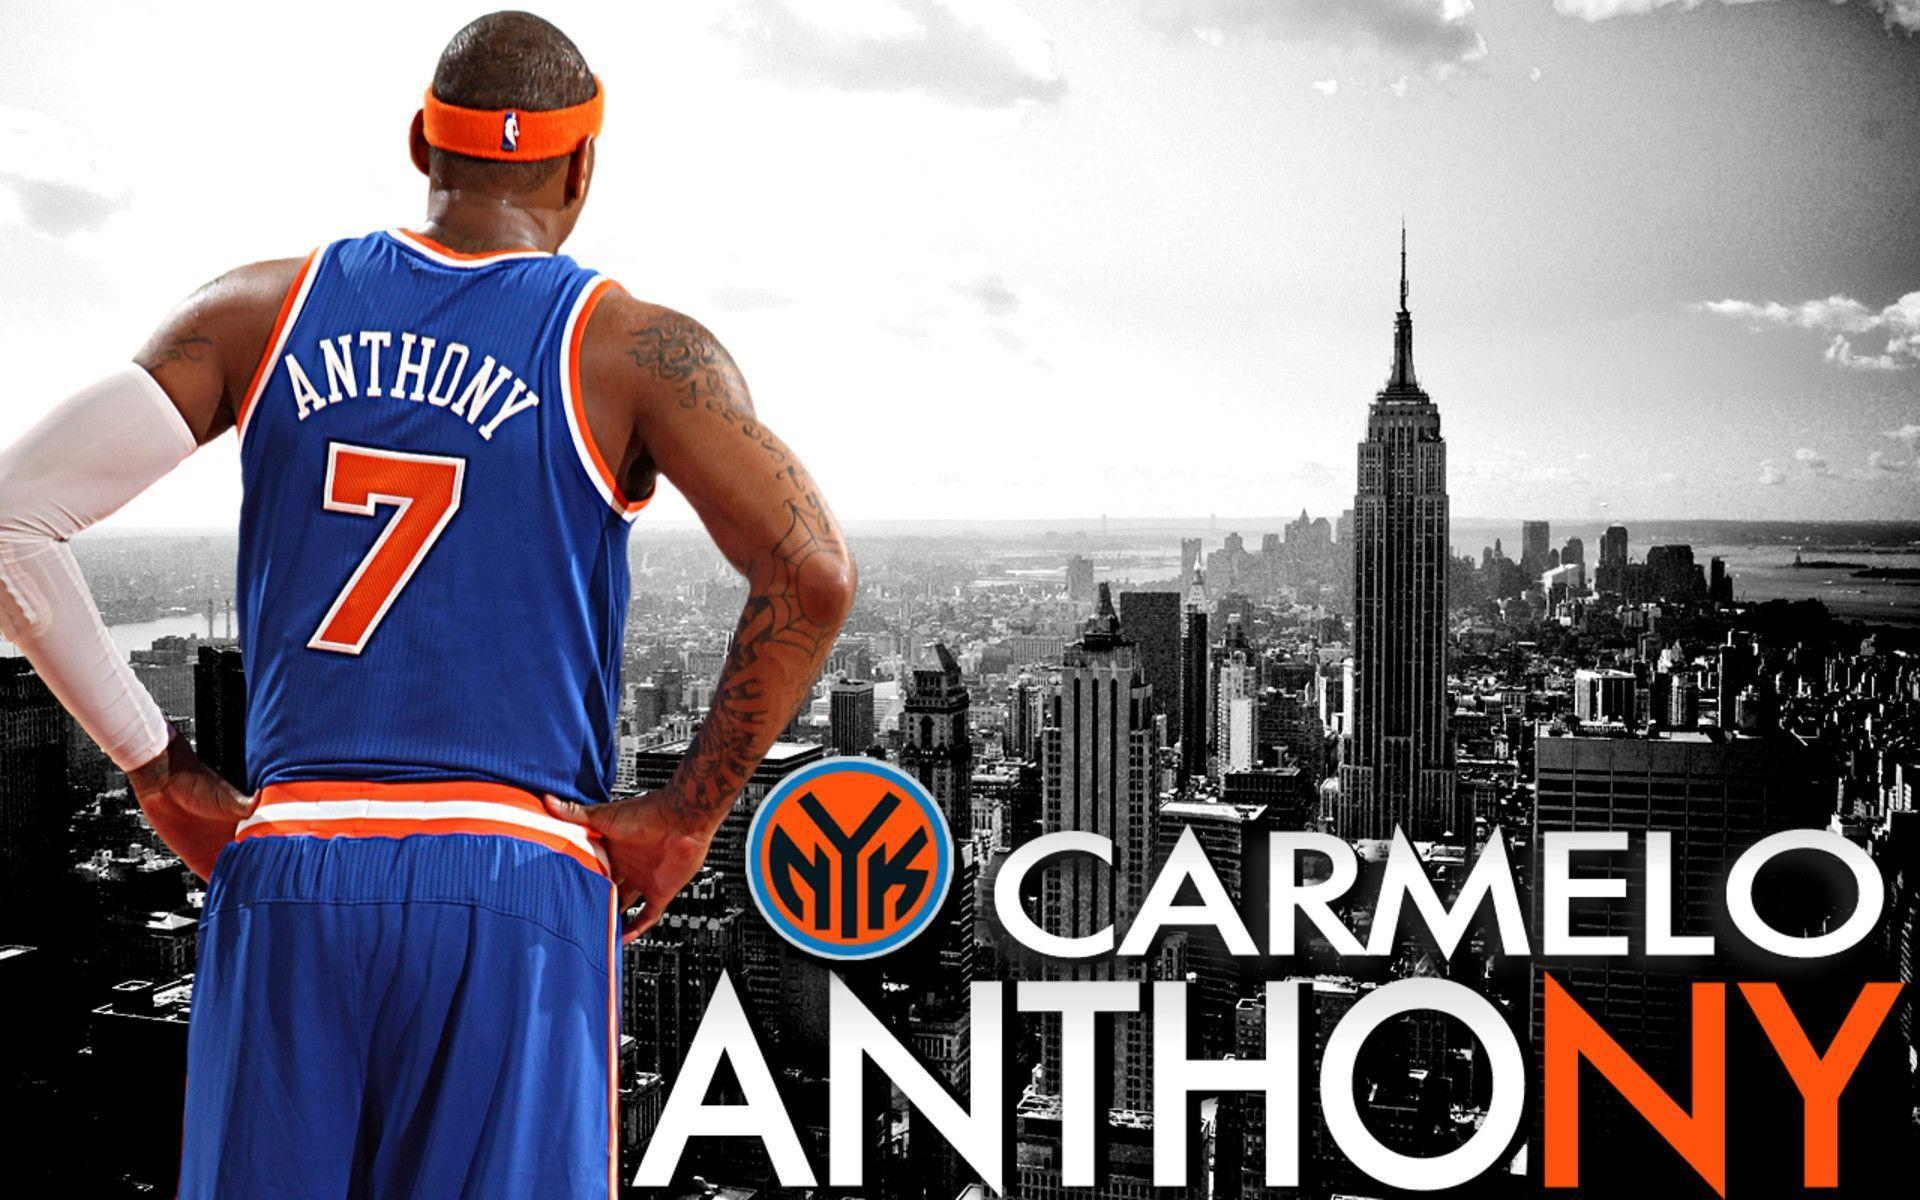 New York Knicks 2014 Carmelo Anthony Wallpapers Wide or HD